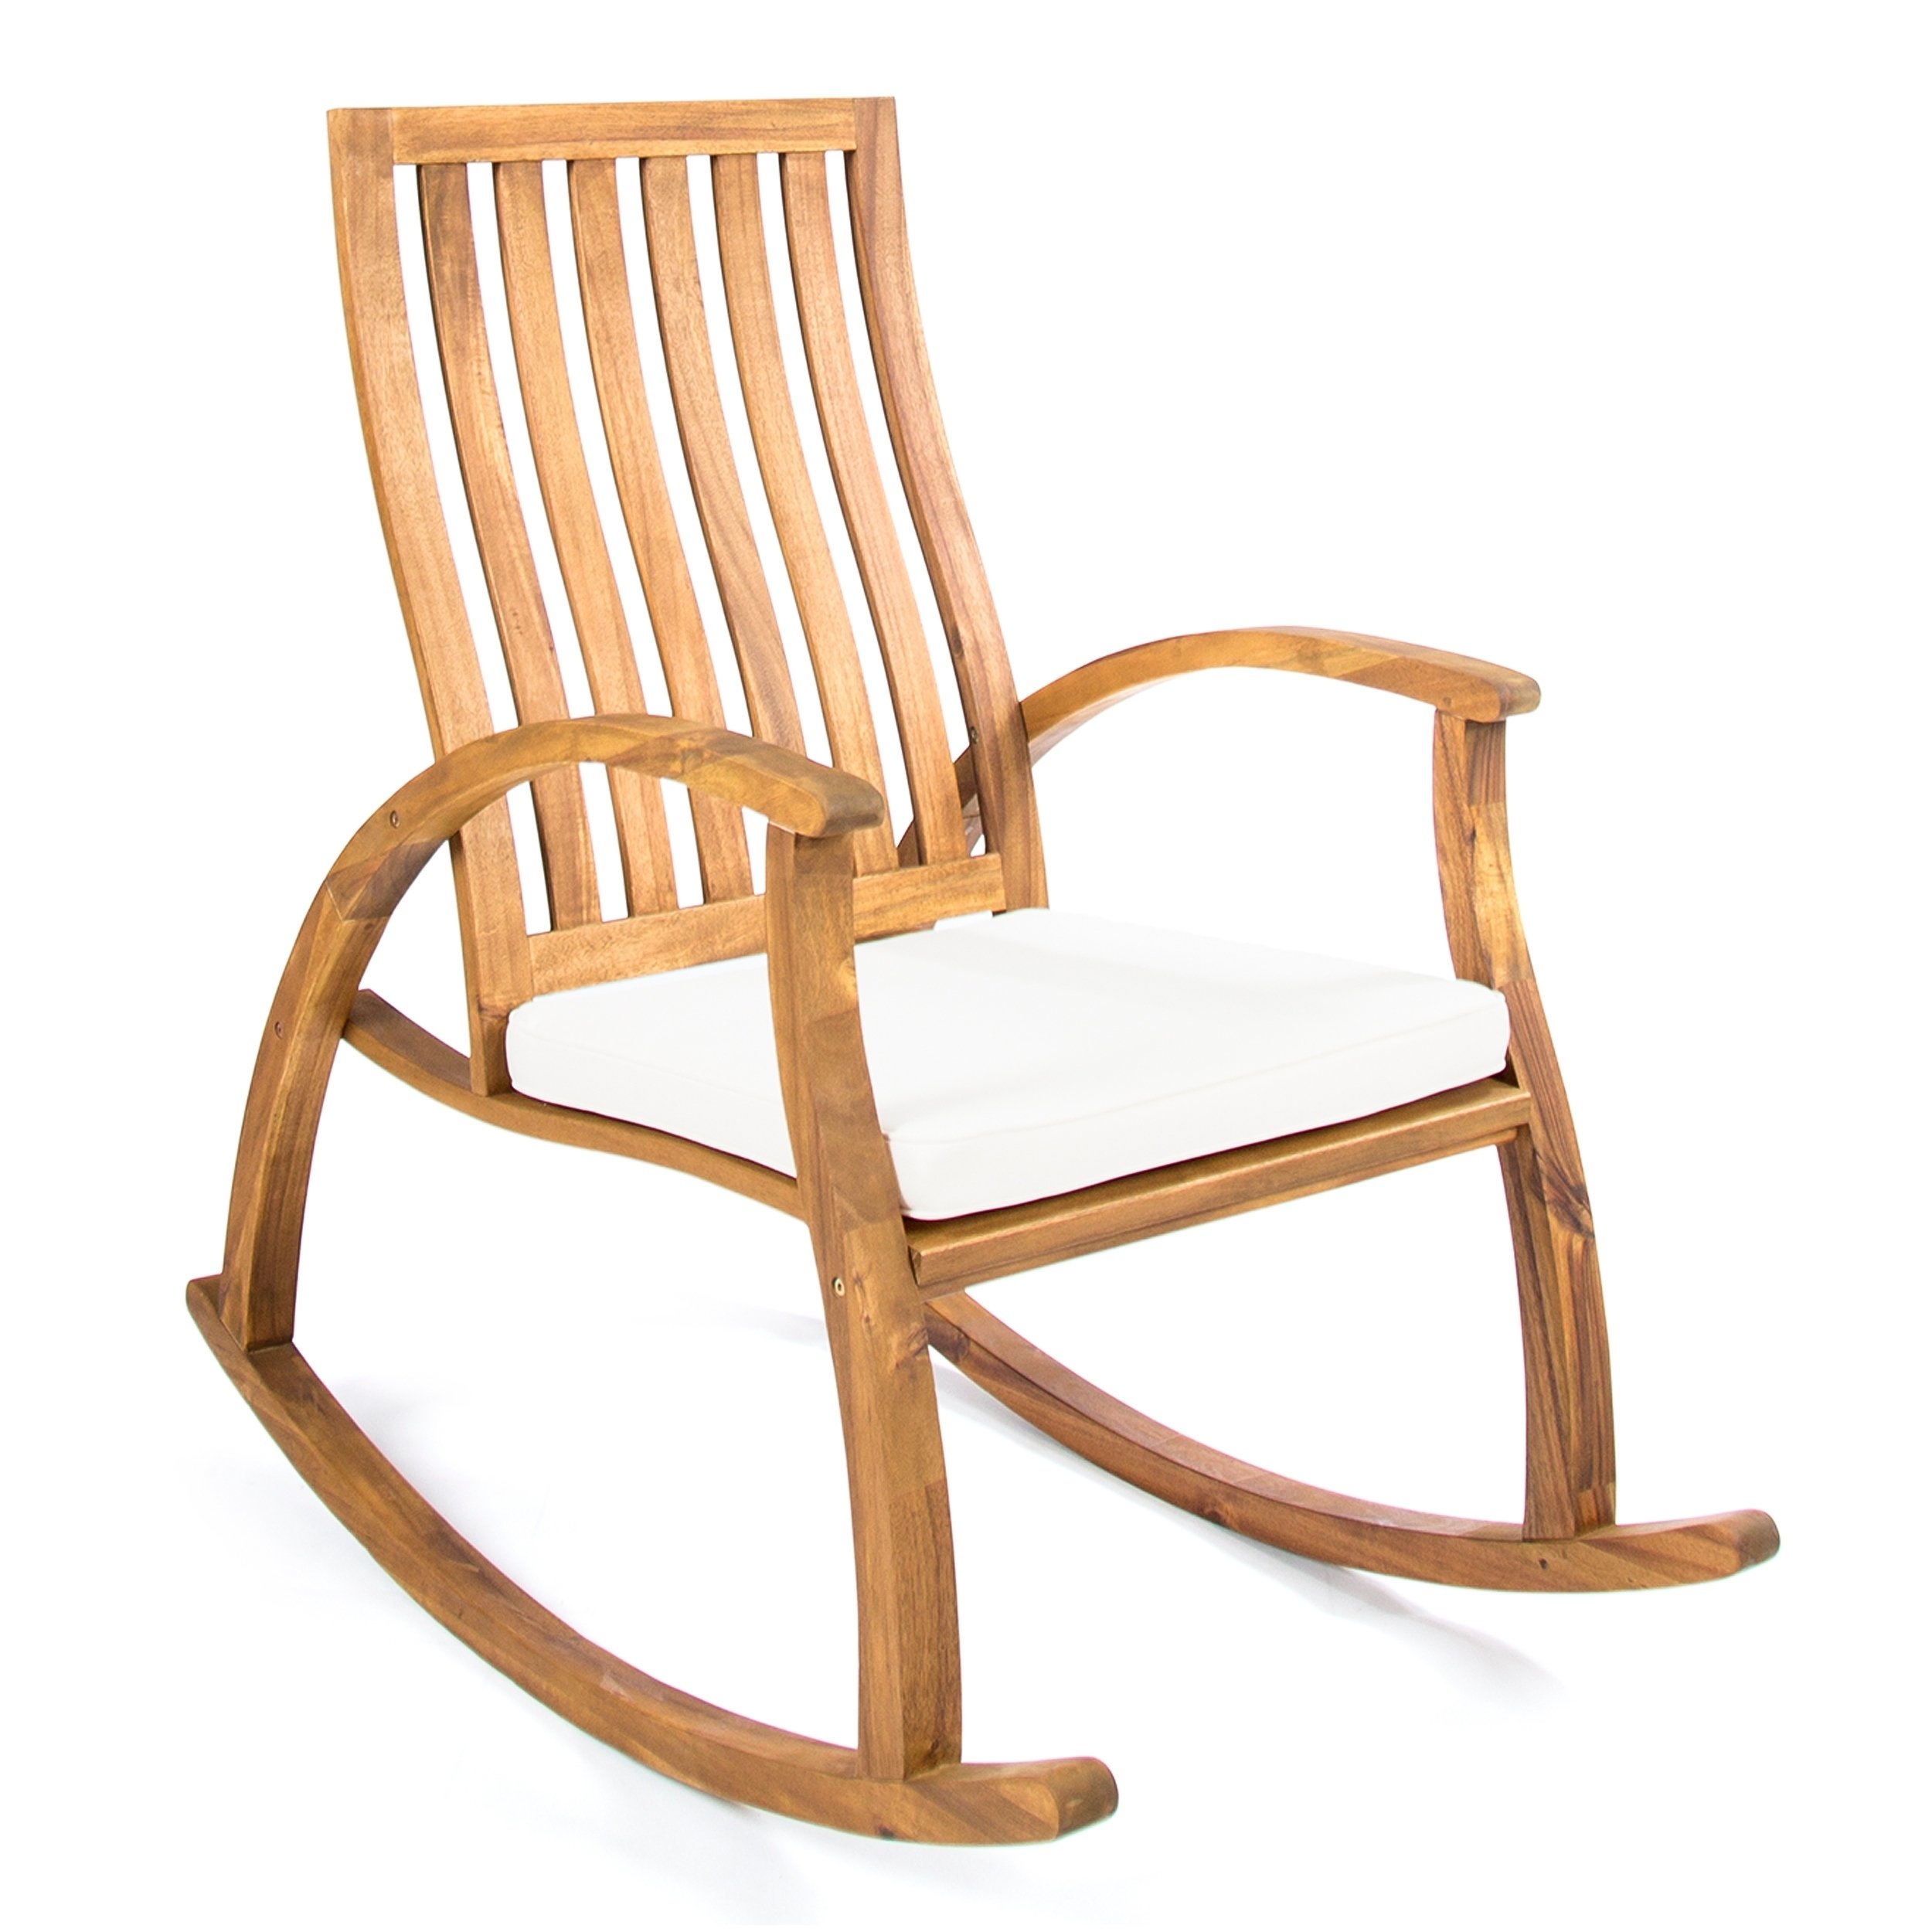 Cayo Outdoor Acacia Wood Rocking Chair With Cushion Throughout Rocking Chairs, Cream And Brown (#4 of 20)